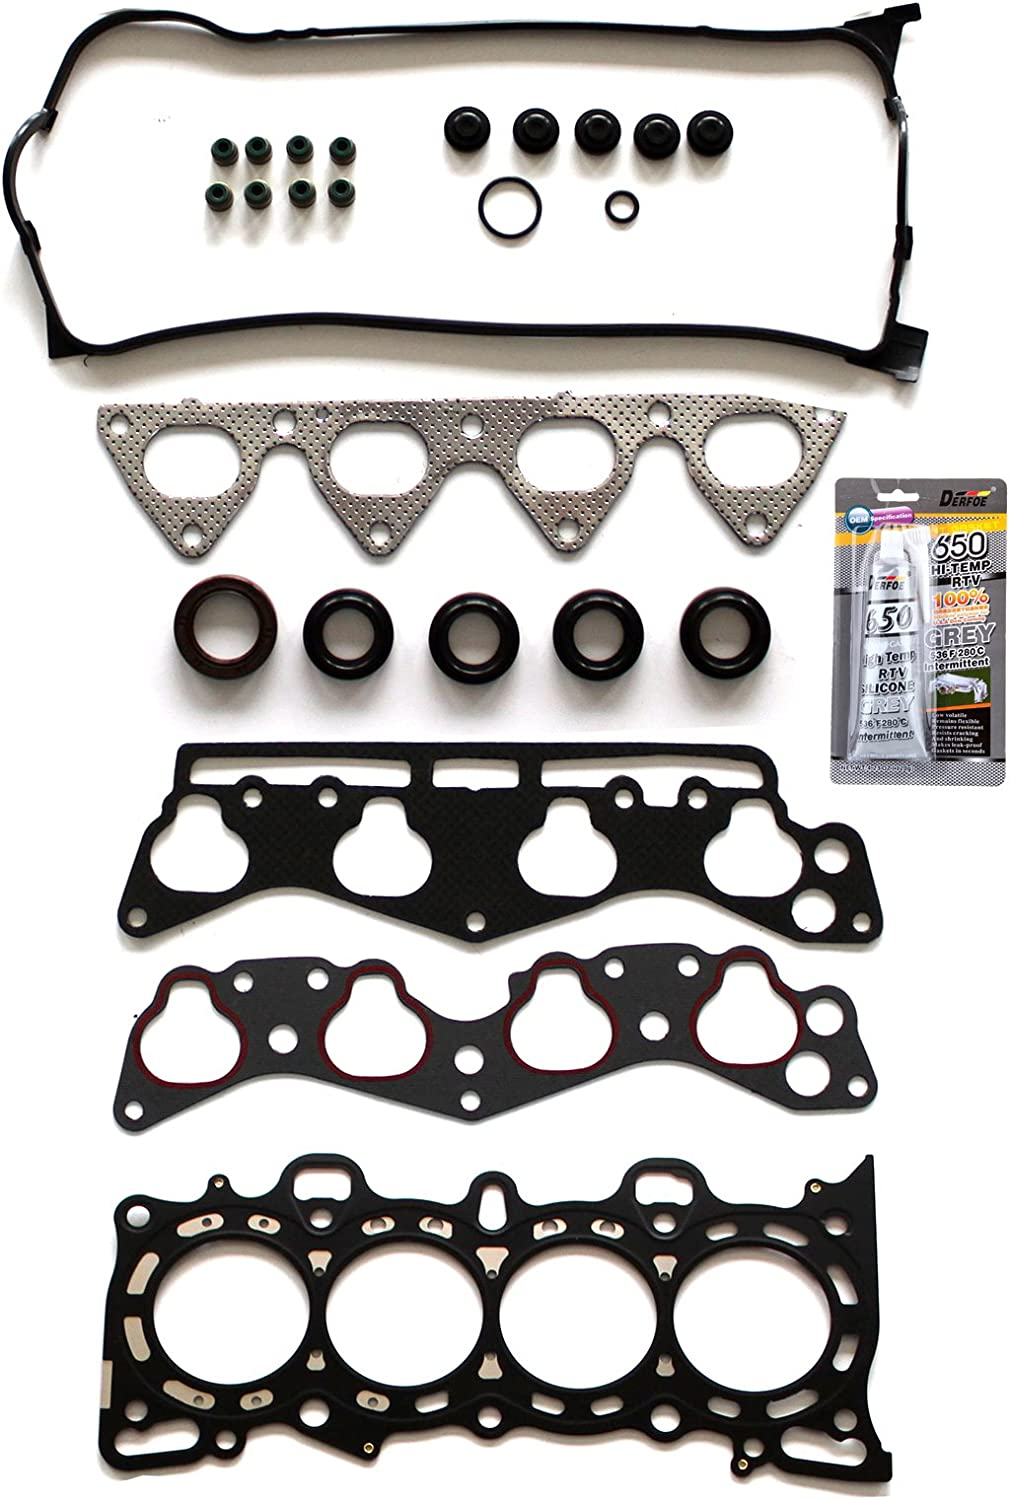 SCITOO Head Gasket Set Award Replacement for Civic Sol S Civ del Award-winning store Honda